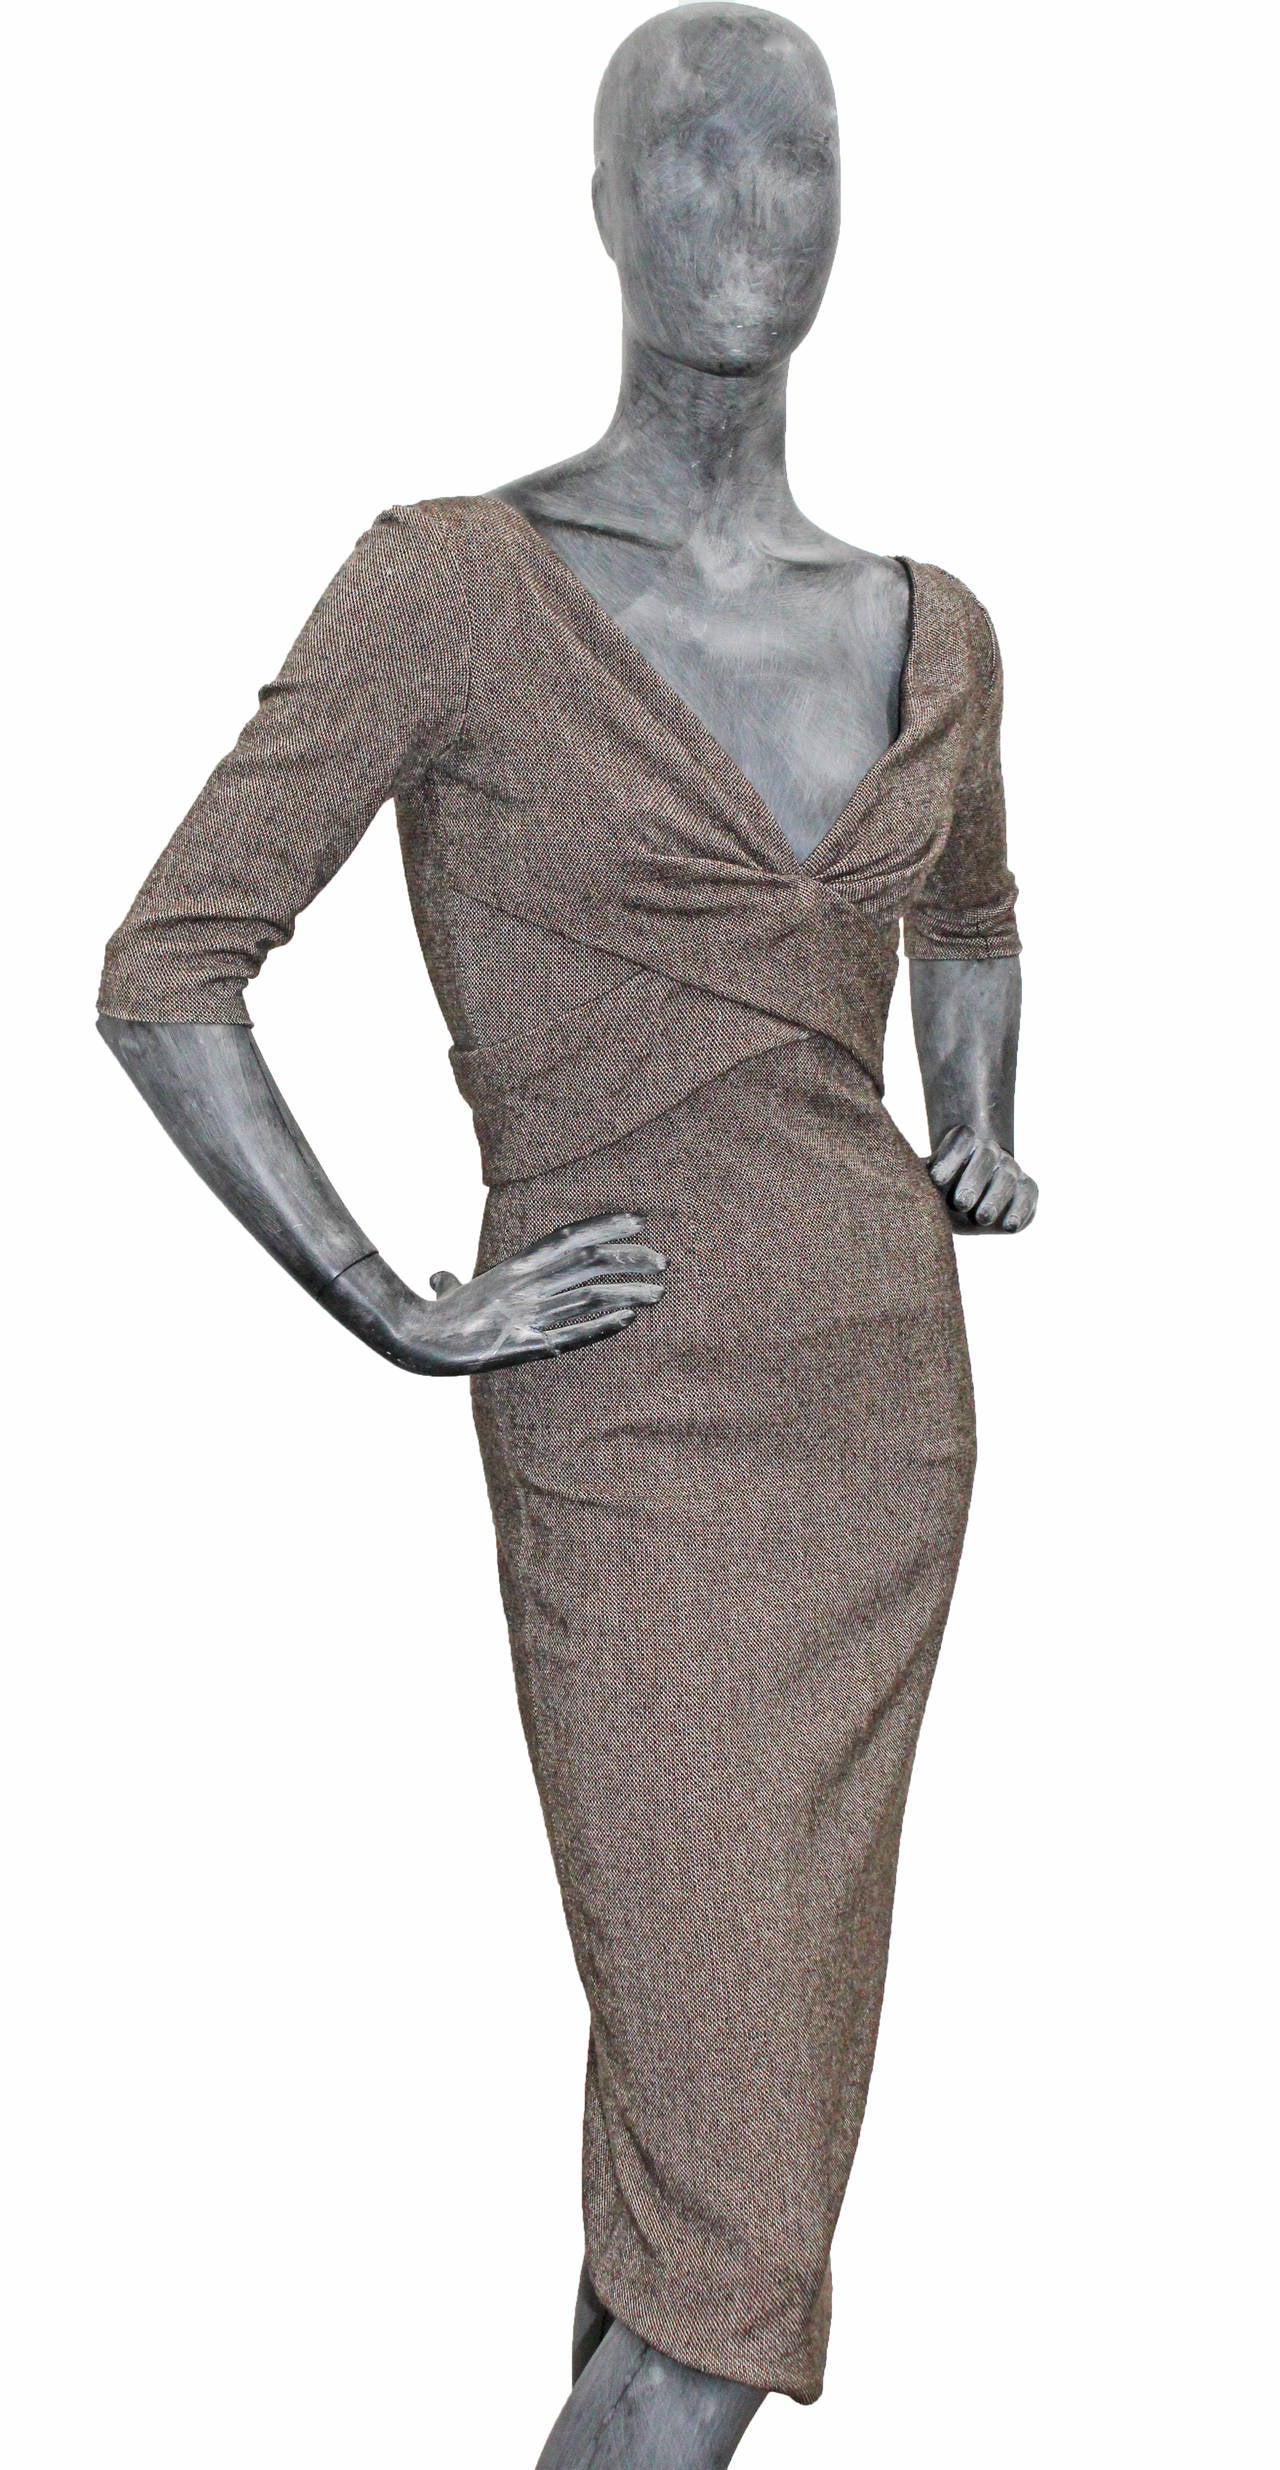 Tweed dress designed by Alexander McQueen in a 1950s pin-up style from the Autumn/Winter 2005 runway collection. 